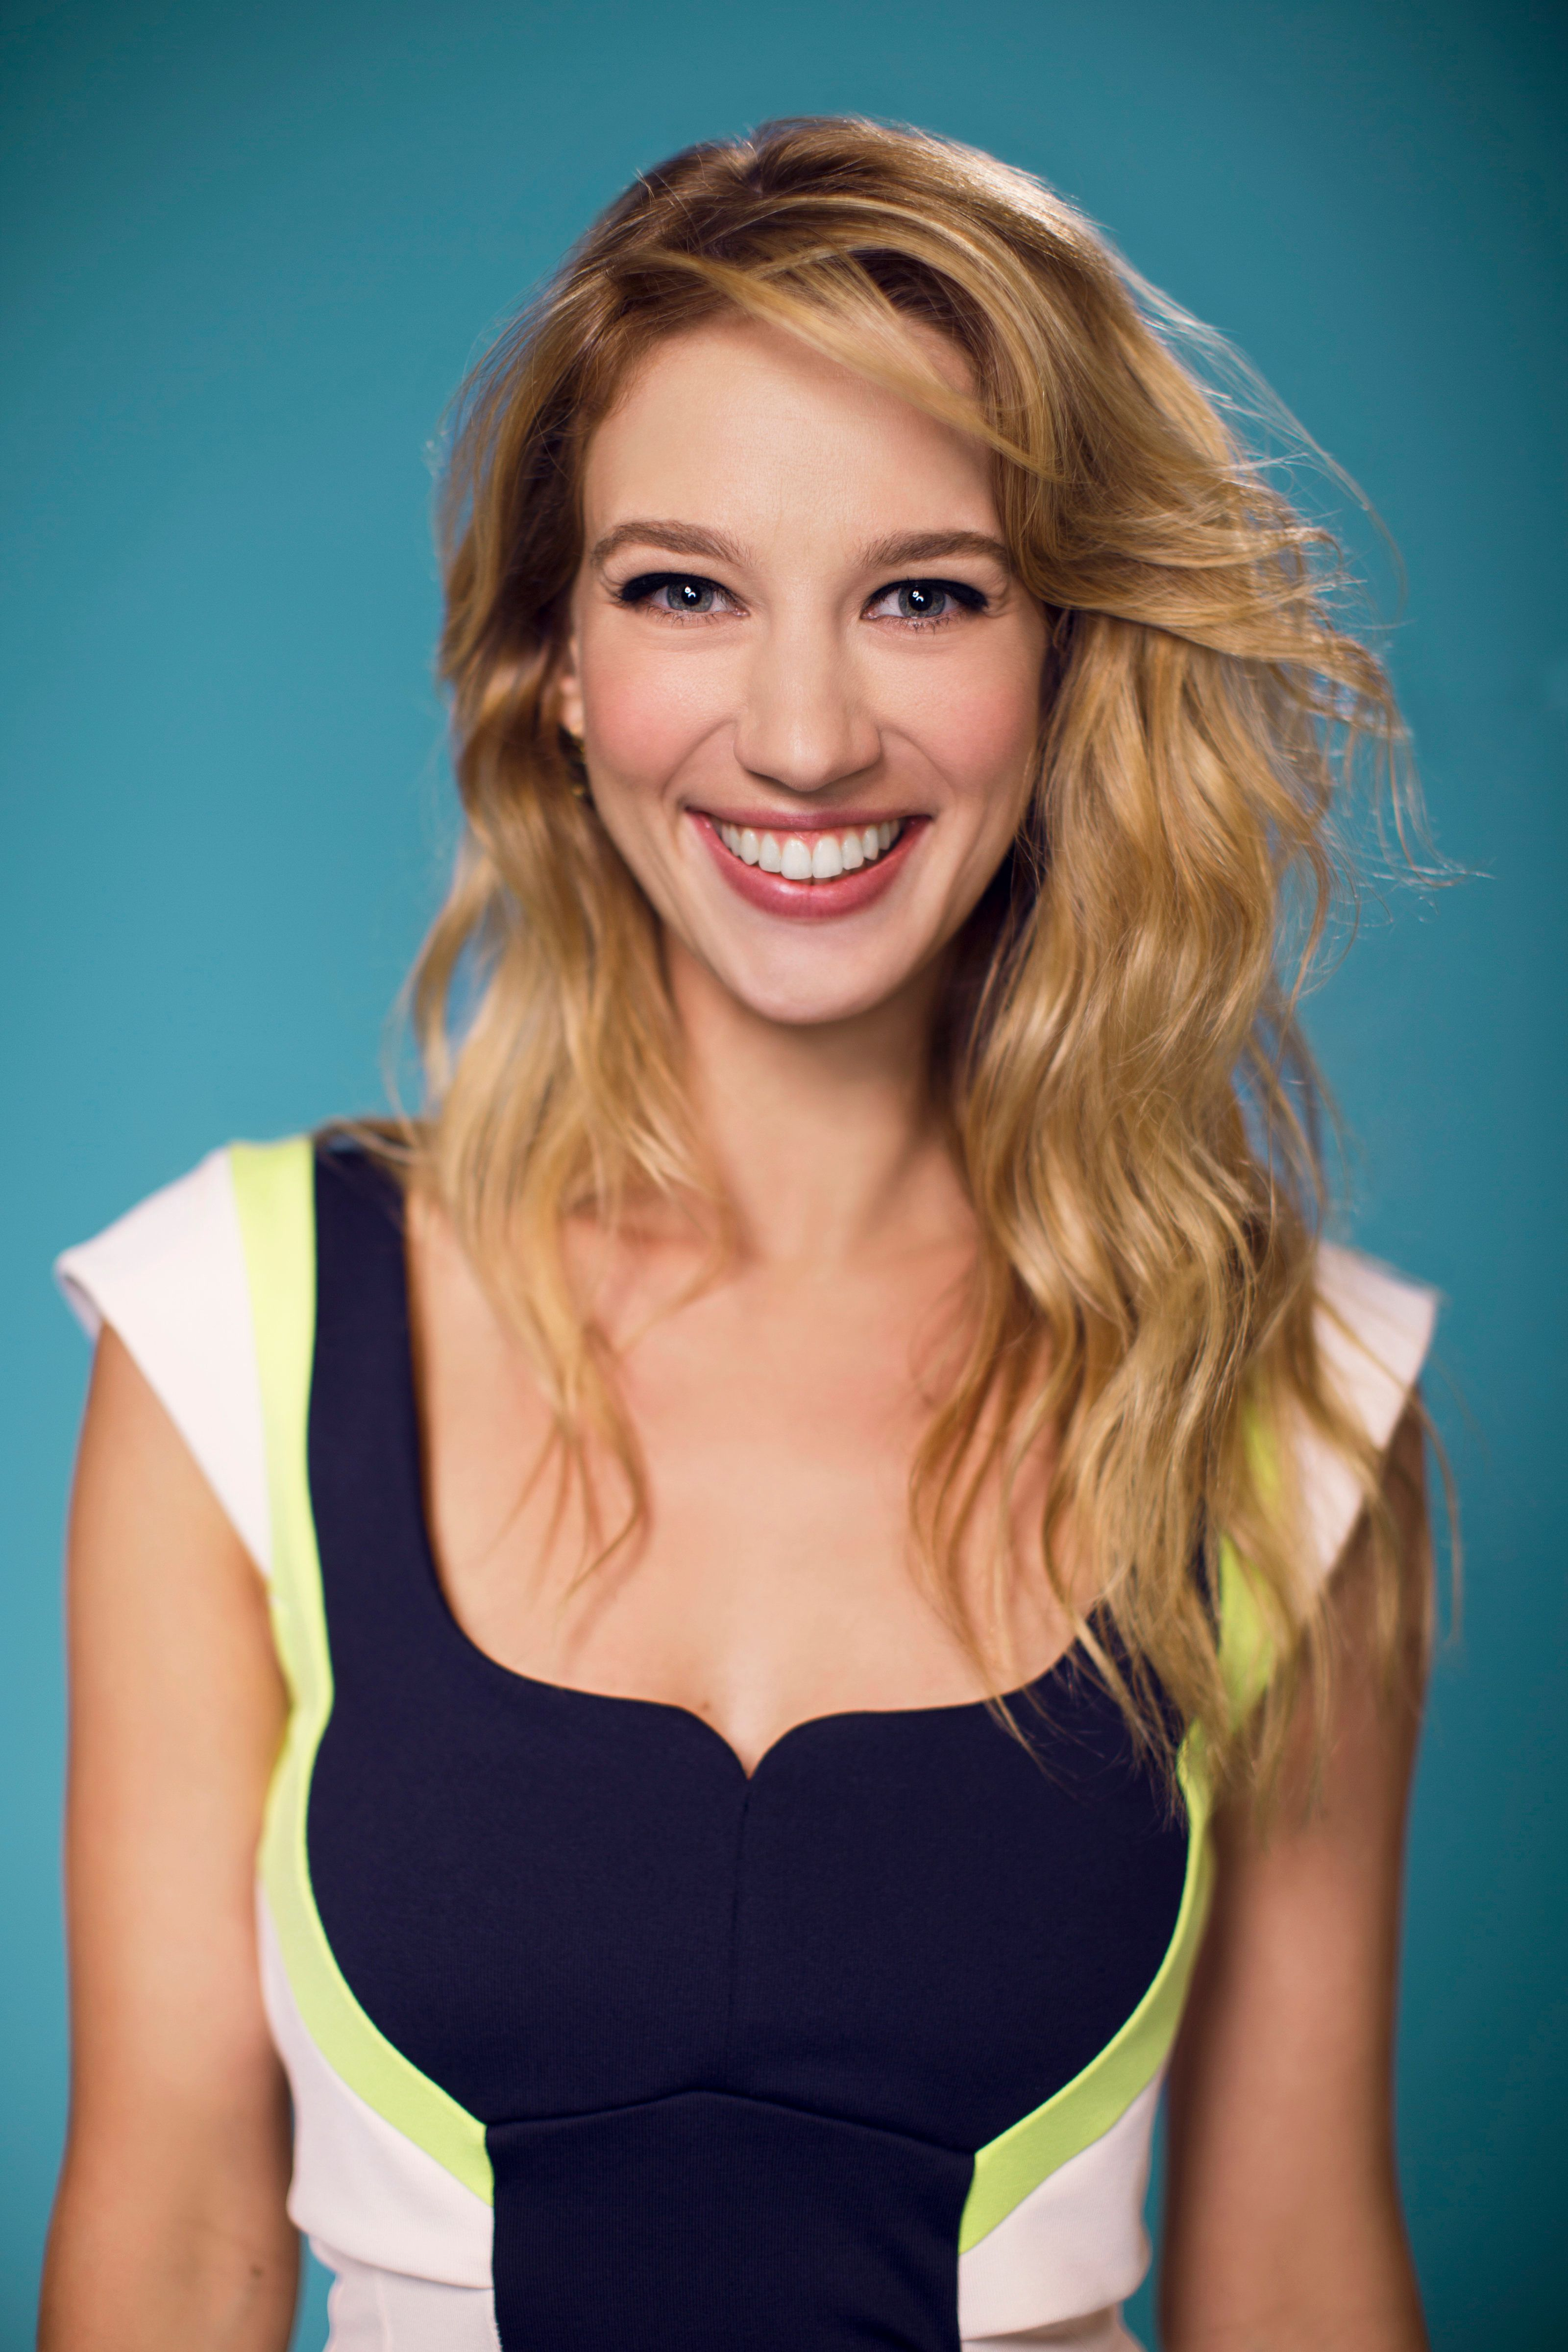 BEVERLY HILLS, CA - JULY 18: Actress Yael Grobglas poses for a portrait at CW network the Summer 2014 TCAs on July 18, 2014 in Beverly Hills, California. (Photo by Christopher Polk/Getty Images)